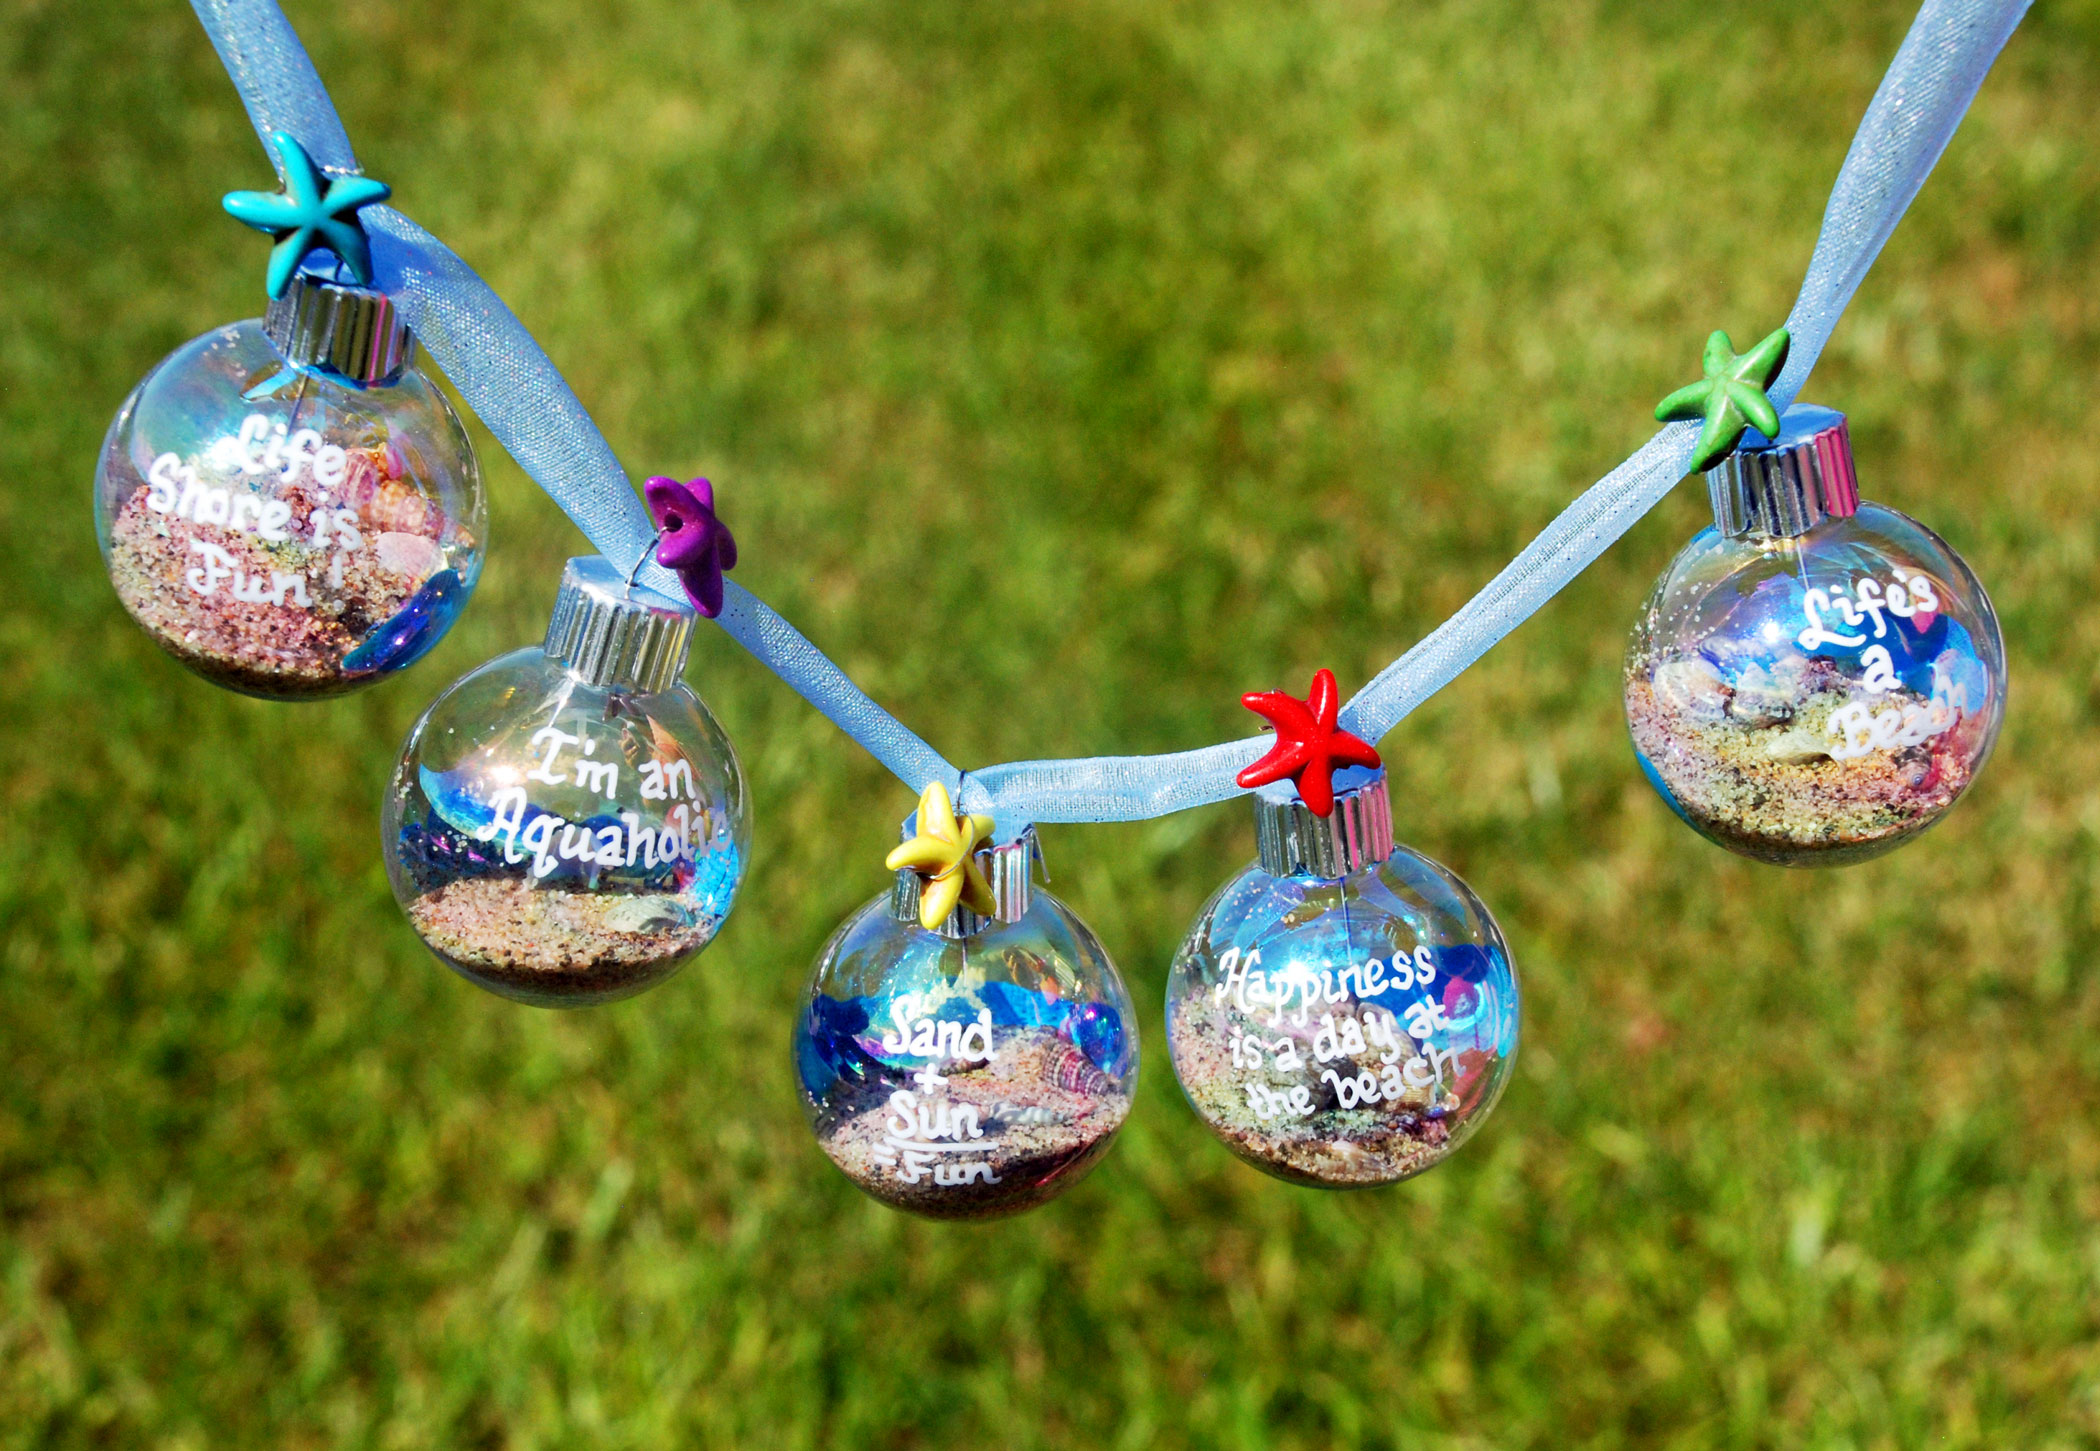 Christmas in July garland made of baubles with beach themes. | OrnamentShop.com